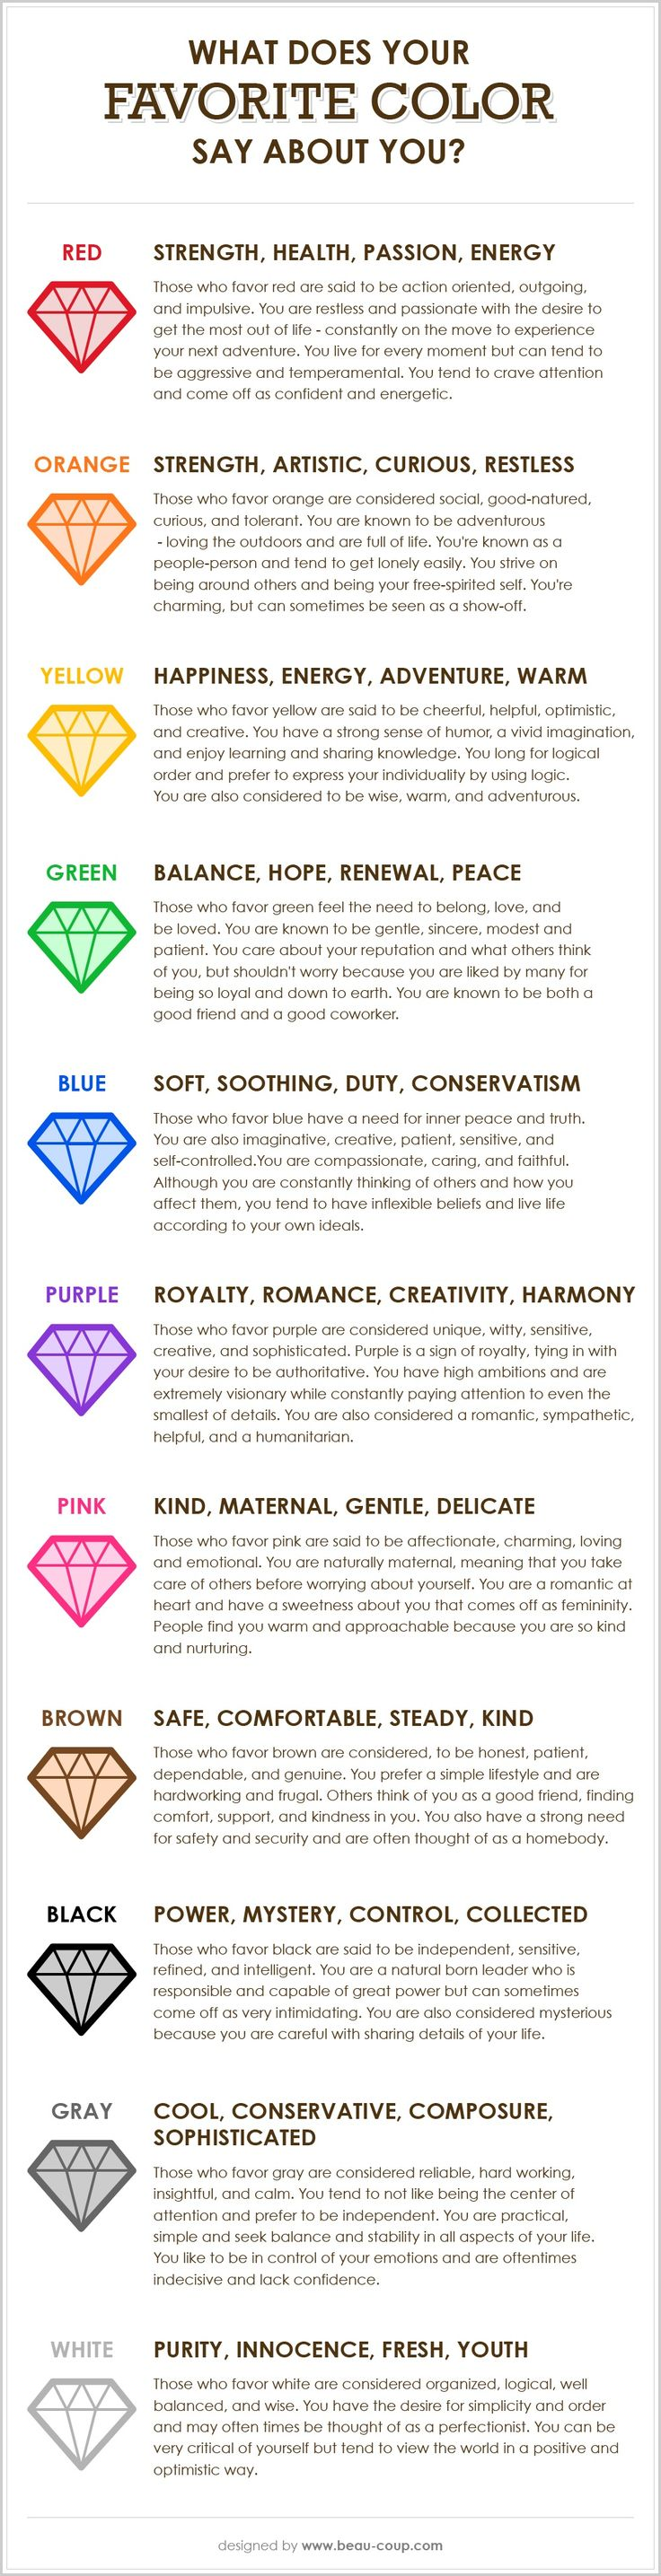 best favorite color ideas personality colors what does your favorite color say about you